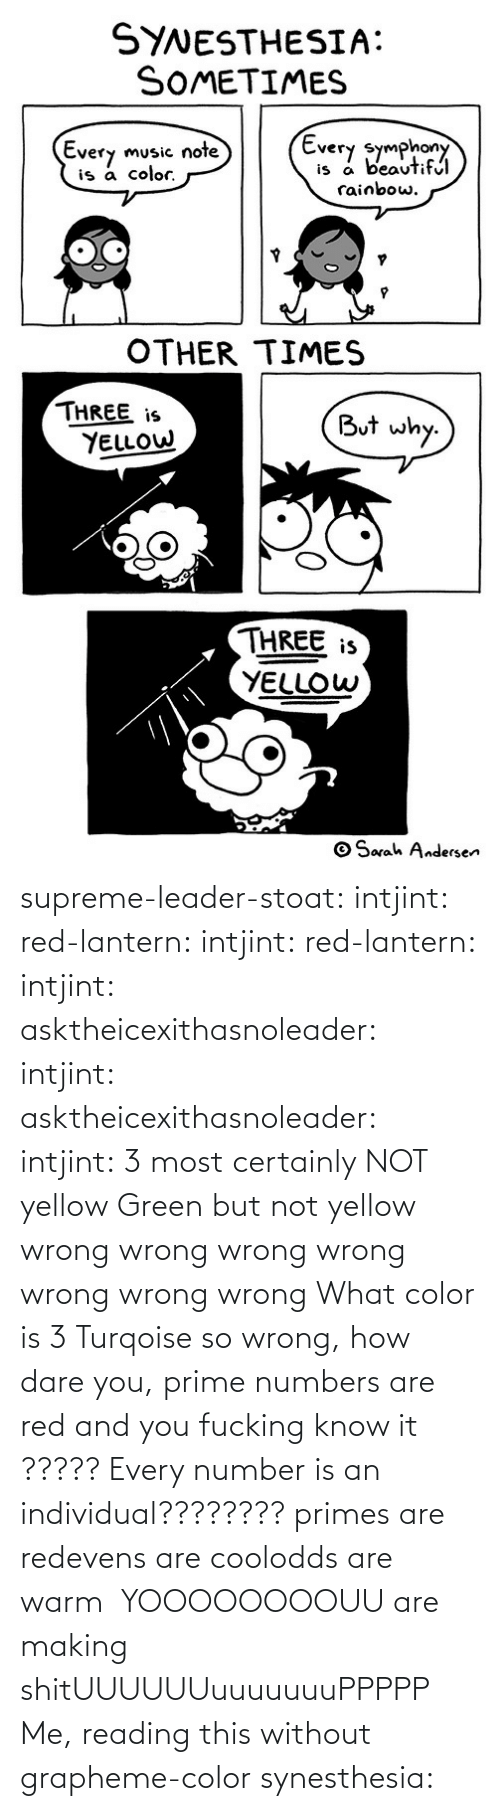 reading: supreme-leader-stoat: intjint:  red-lantern:  intjint:  red-lantern:  intjint:  asktheicexithasnoleader:  intjint:   asktheicexithasnoleader:  intjint:  3 most certainly NOT yellow   Green but not yellow  wrong wrong wrong wrong wrong wrong wrong    What color is 3  Turqoise  so wrong, how dare you, prime numbers are red and you fucking know it   ????? Every number is an individual????????  primes are redevens are coolodds are warm   YOOOOOOOOUU are making shitUUUUUUuuuuuuuPPPPP  Me, reading this without grapheme-color synesthesia: